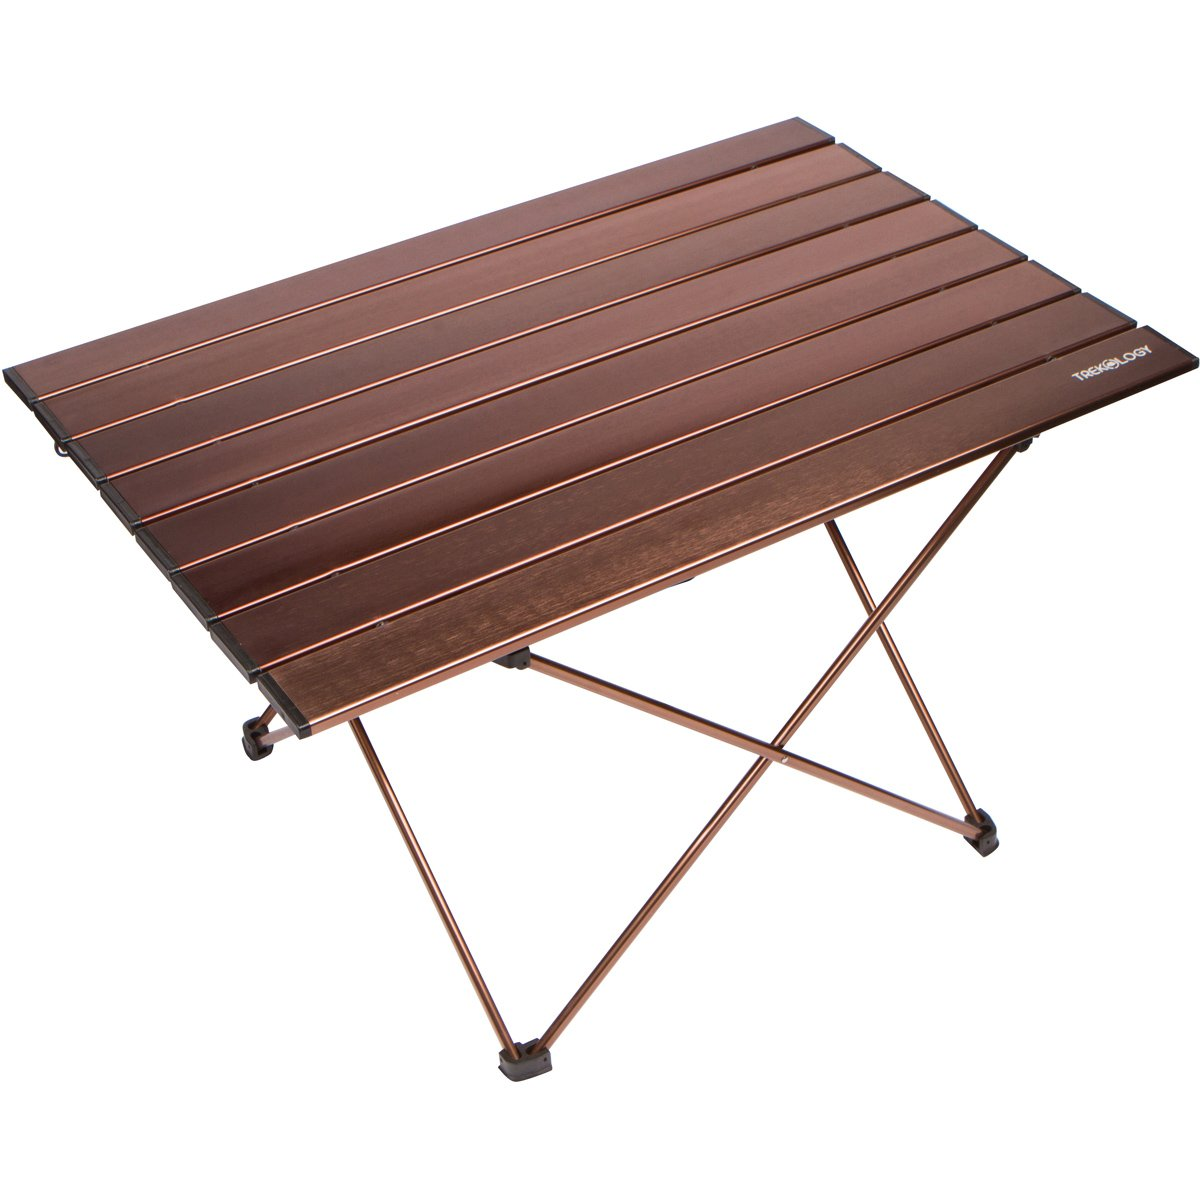 Trekology Portable Camping Side Tables Aluminum Table Top: Hard-Topped Folding Table in a Bag Picnic, Camp, Beach, Boat, Useful Dining & Cooking Burner, Easy to Clean (Brown, Large) by Trekology